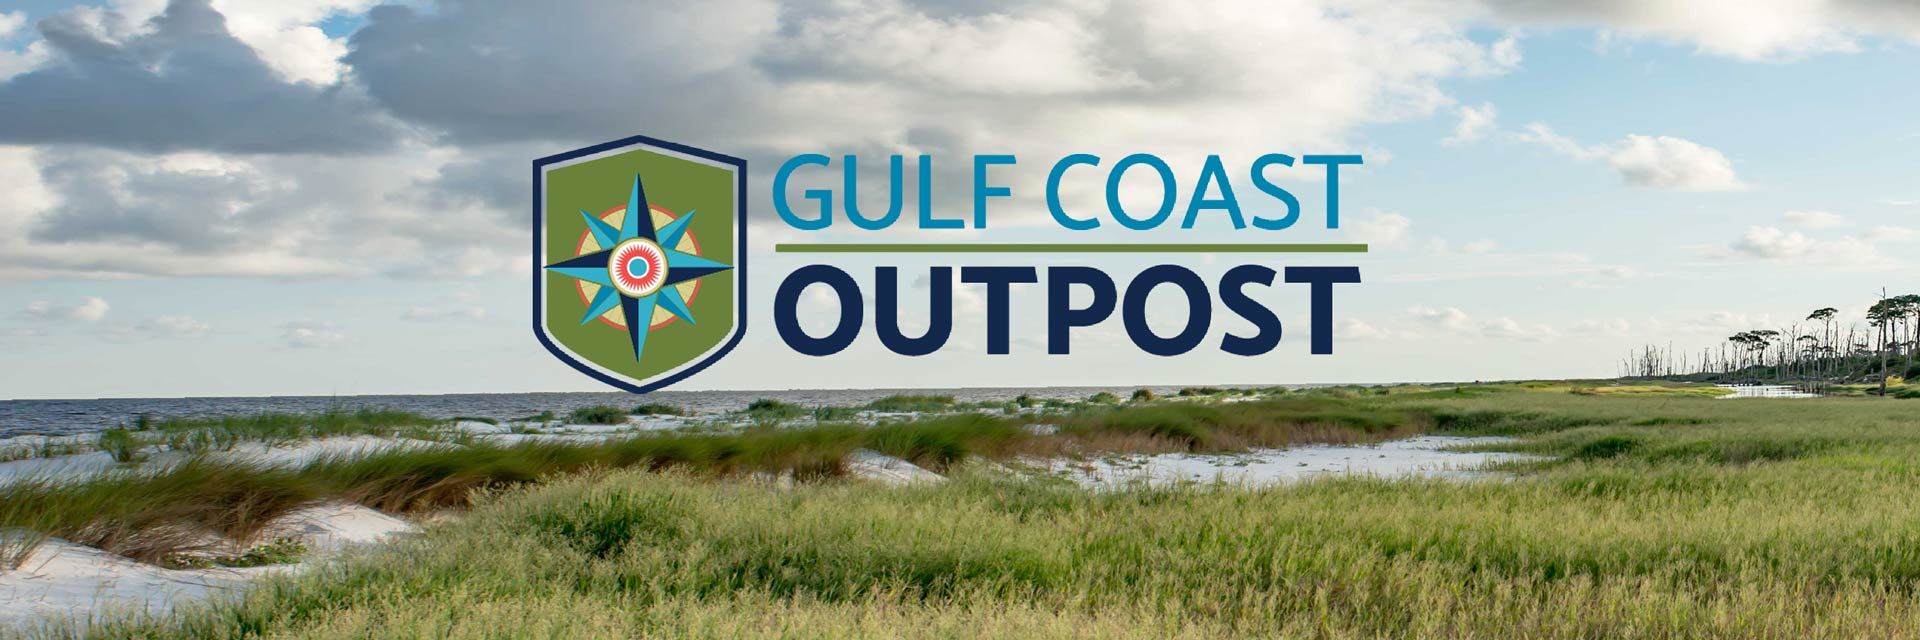 Mississippi Gulf Coast National Heritage Area - Gulf coast Outpost